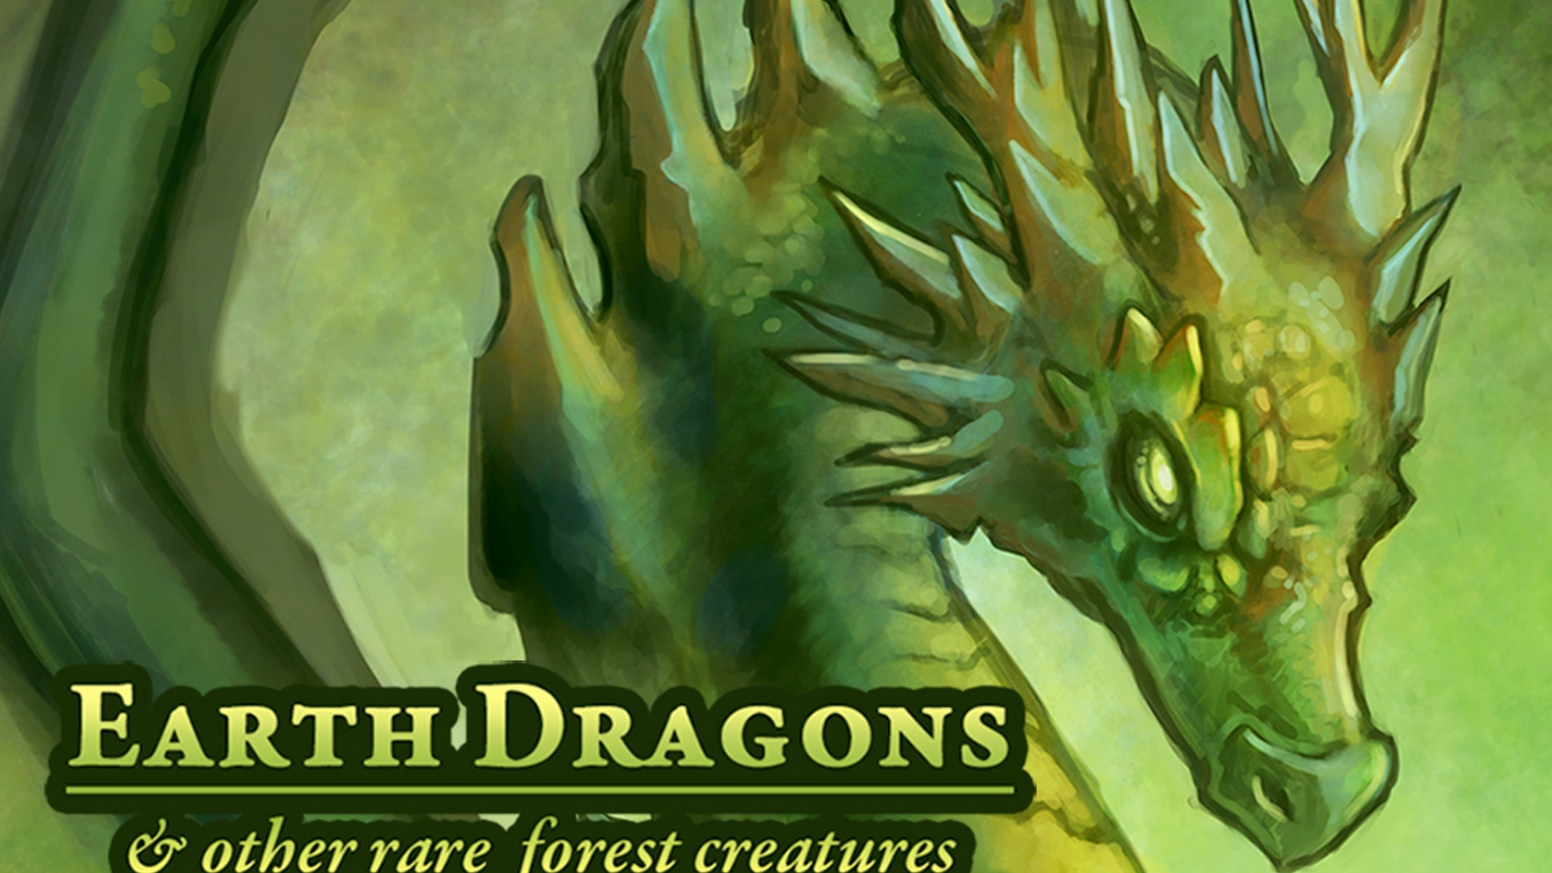 Earth Dragons & Other Forest Creatures playing cards AND matching 100 page 6x9 field guide! Plus a 75 page 5x7 pocket guide to goblins and deck!